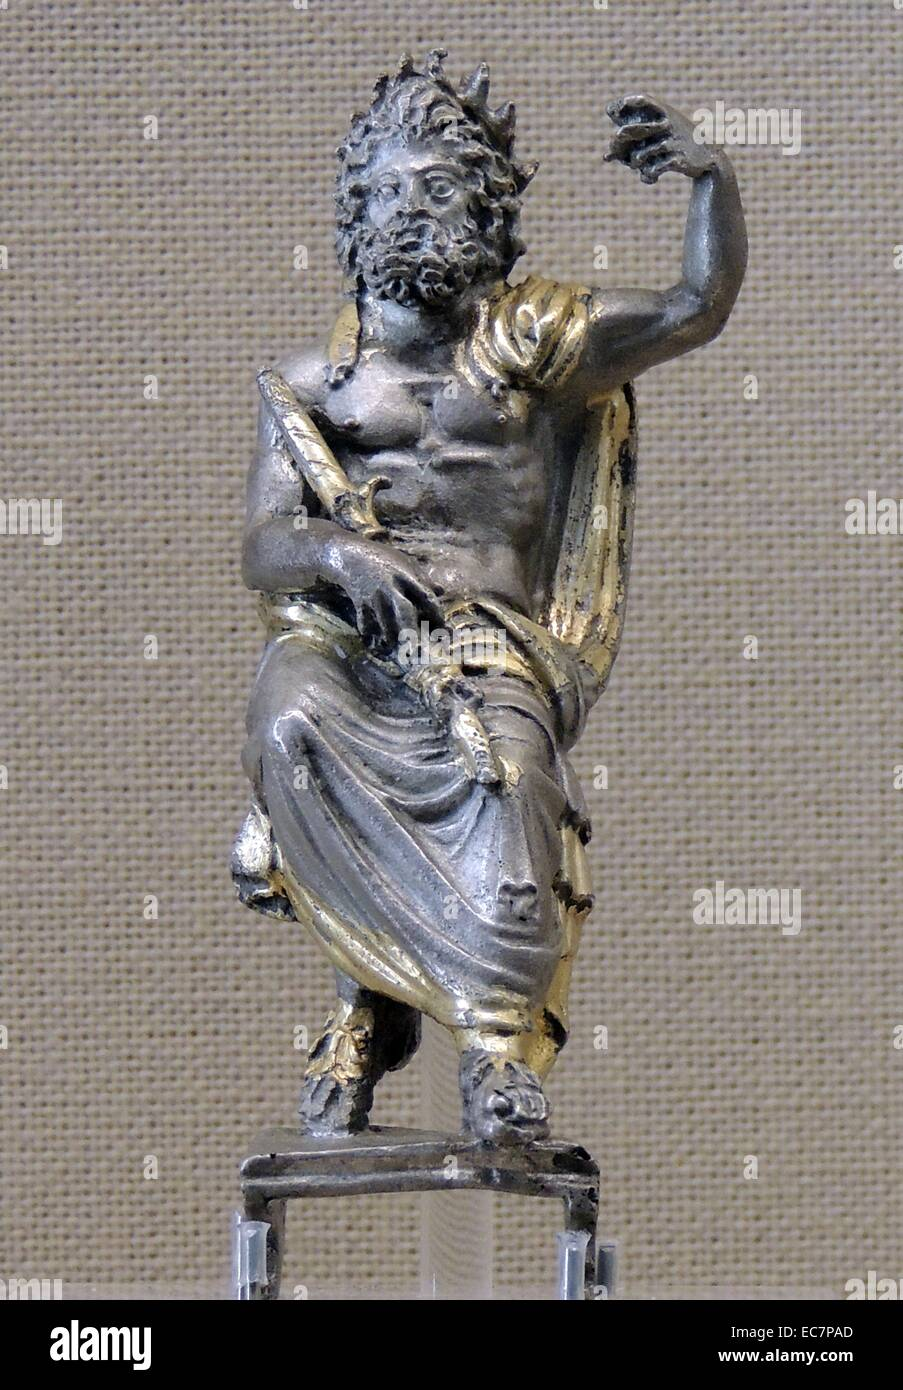 Zeus, patron of the Olympic Games. - Stock Image